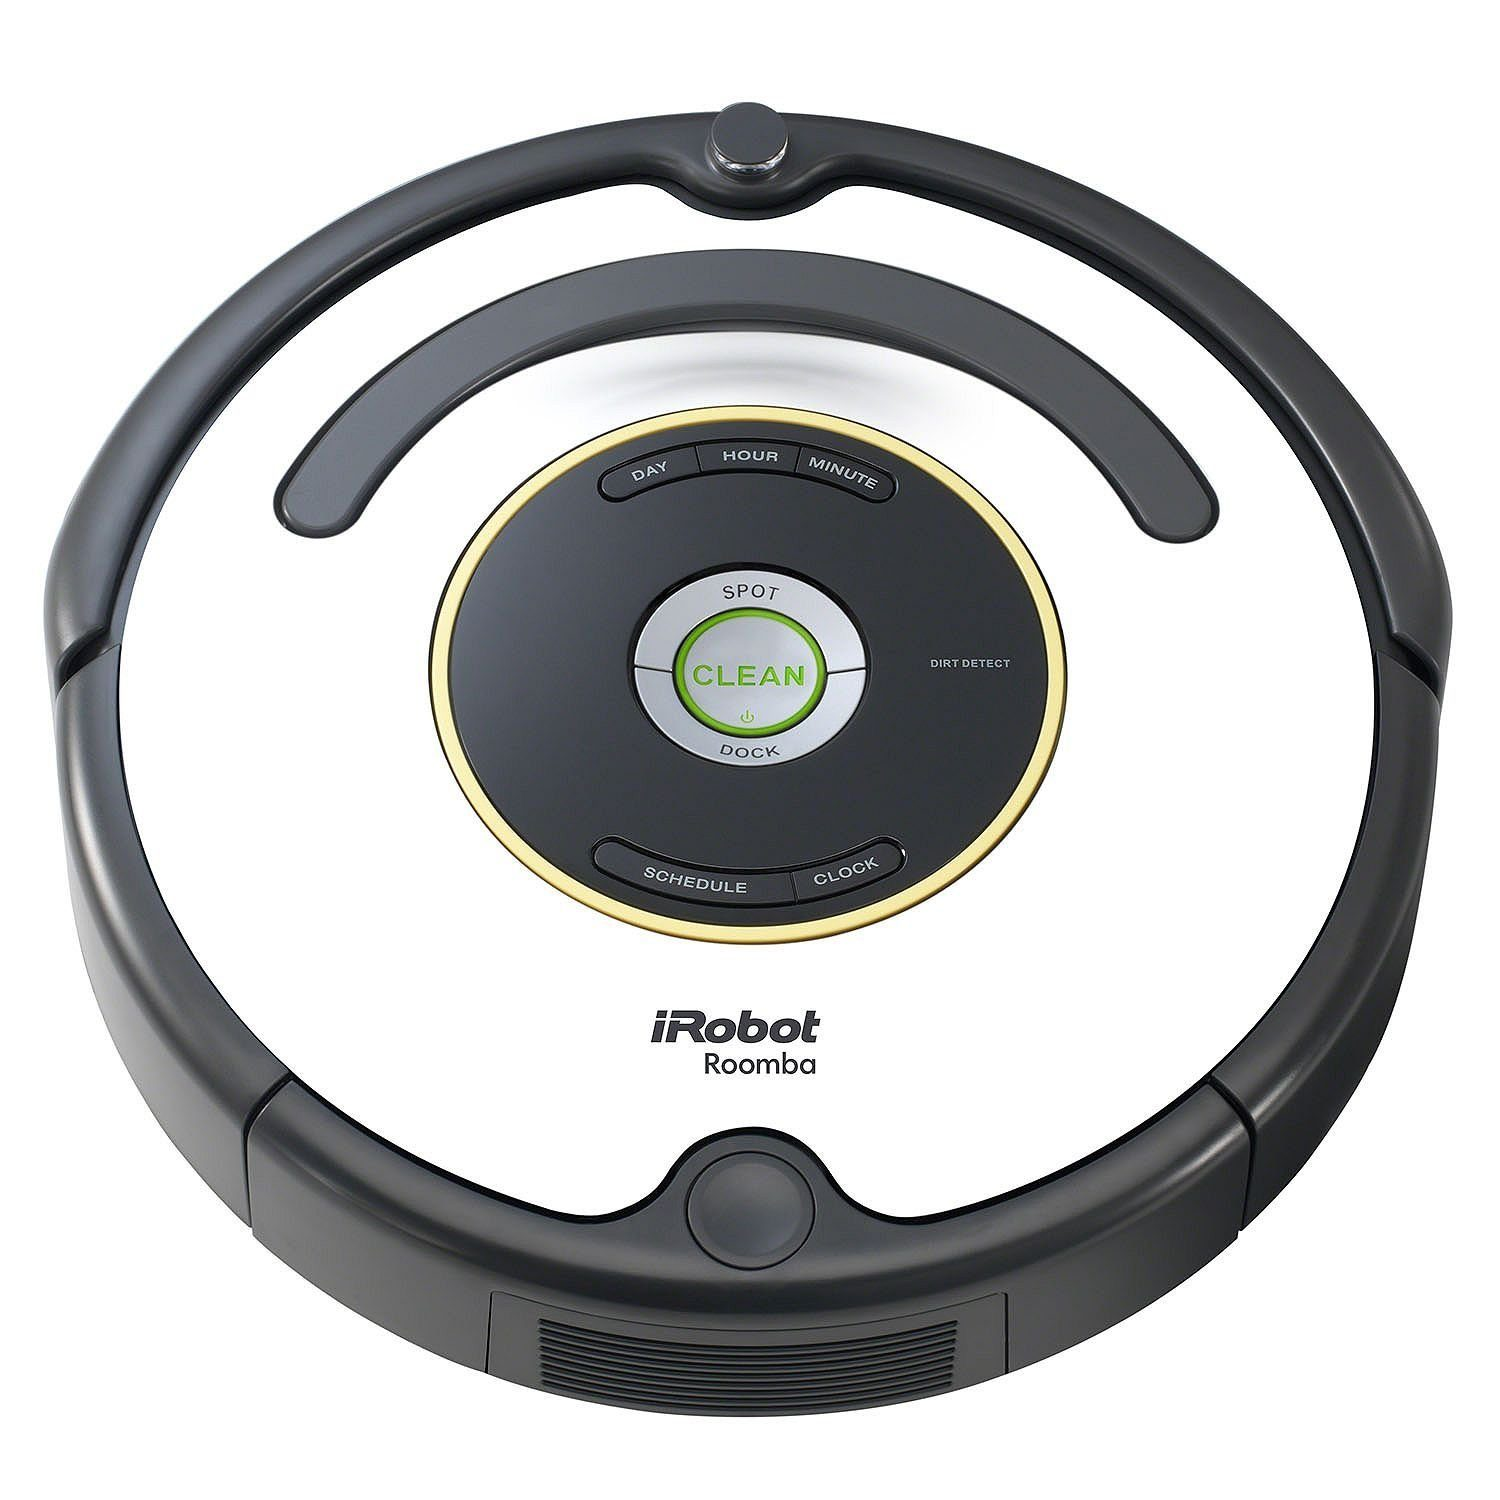 irobot Roomba 665 vacuum cleaner review